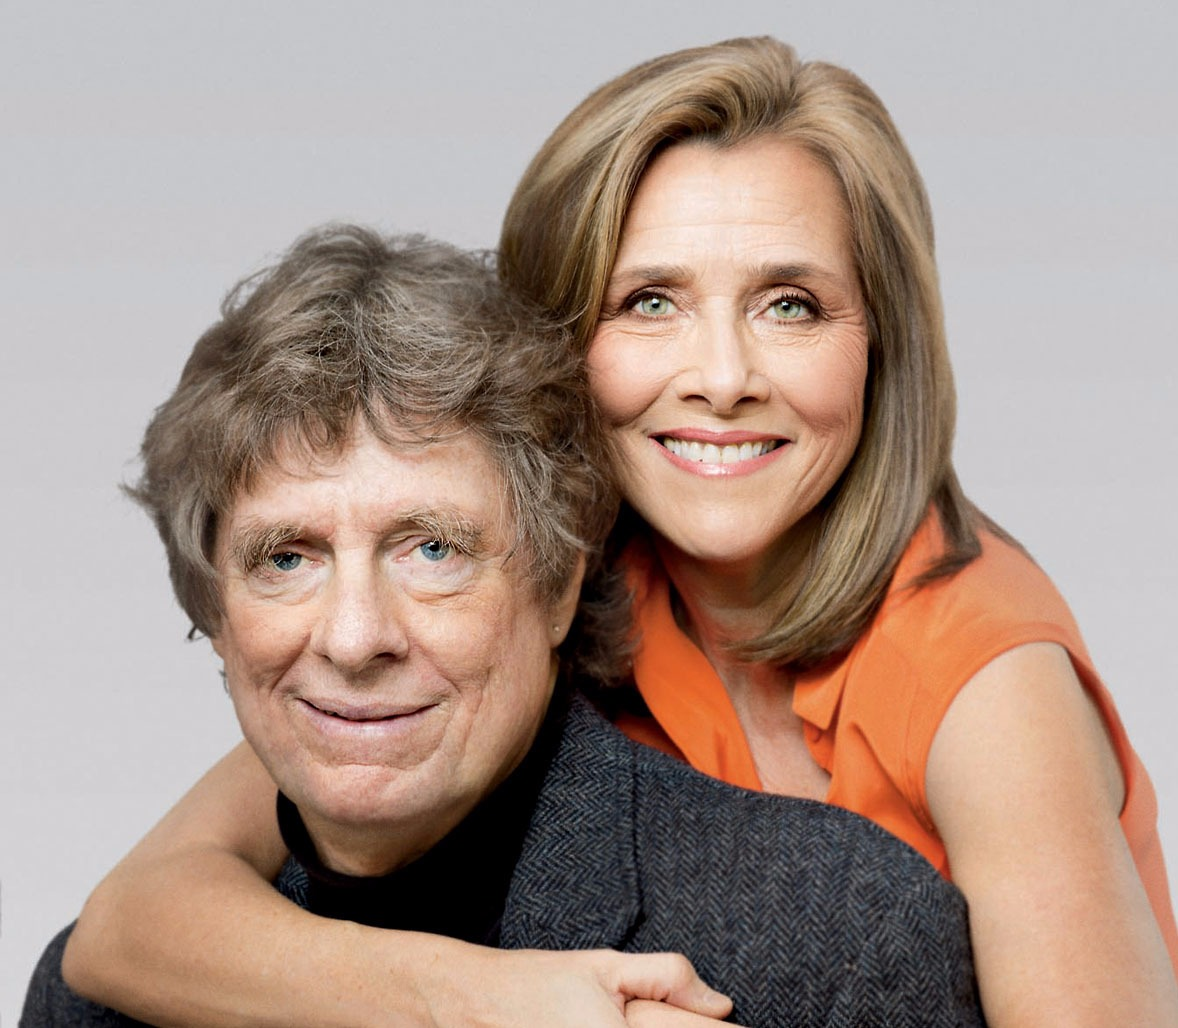 Meredith Vieira hugs husband Richard M. Cohen as they pose for a picture